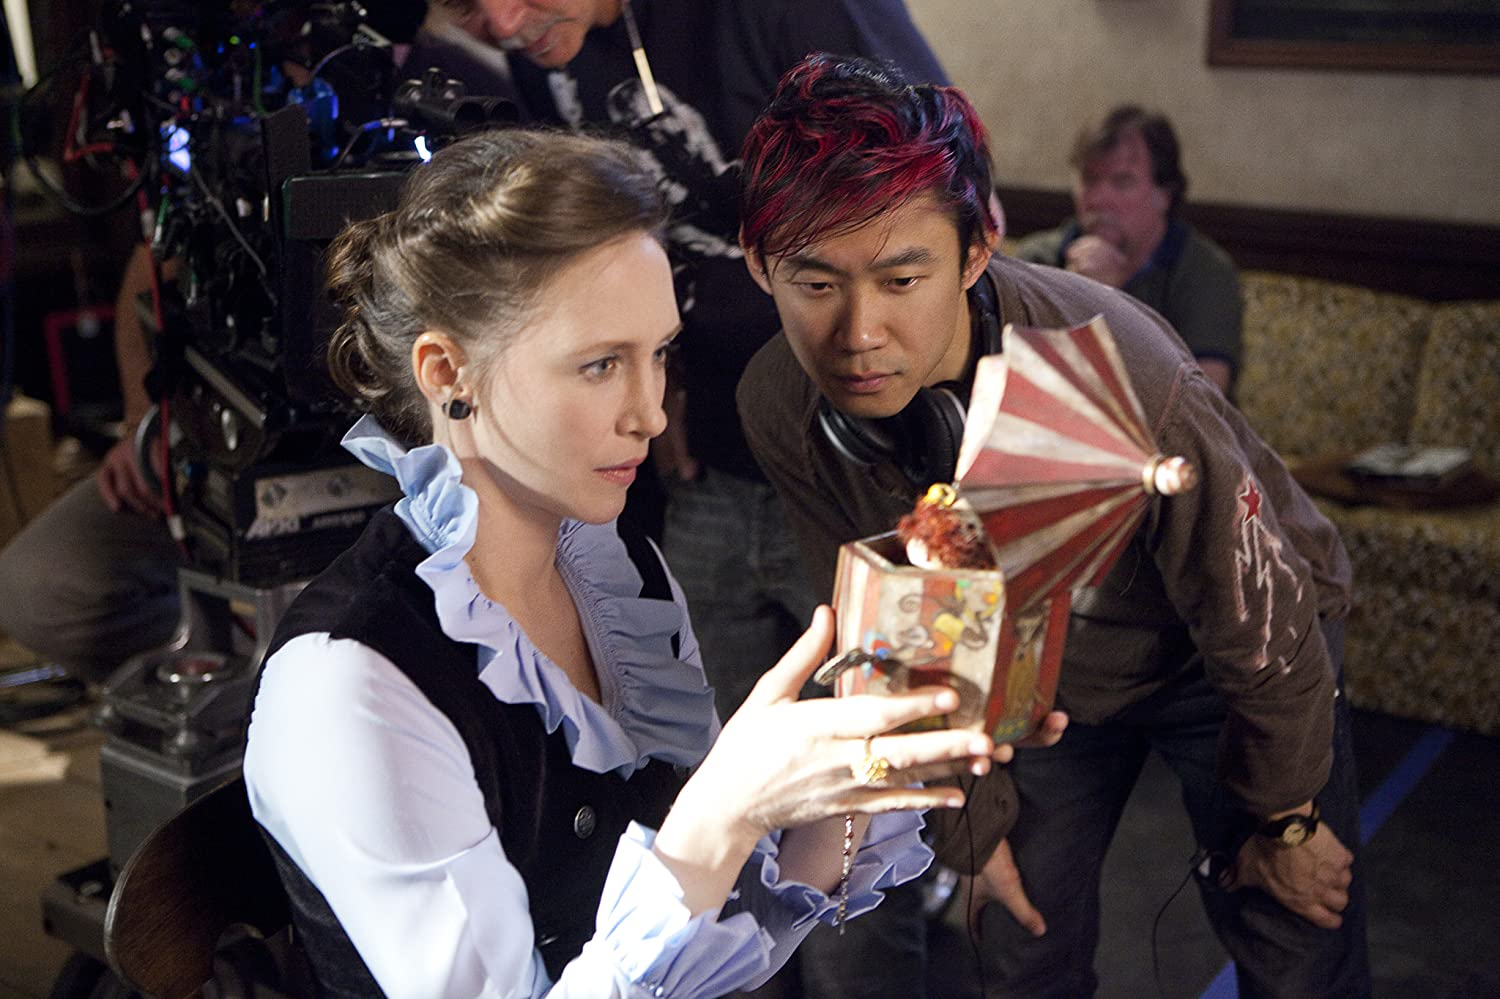 Vera Farmiga and James Wan in The Conjuring (2013)